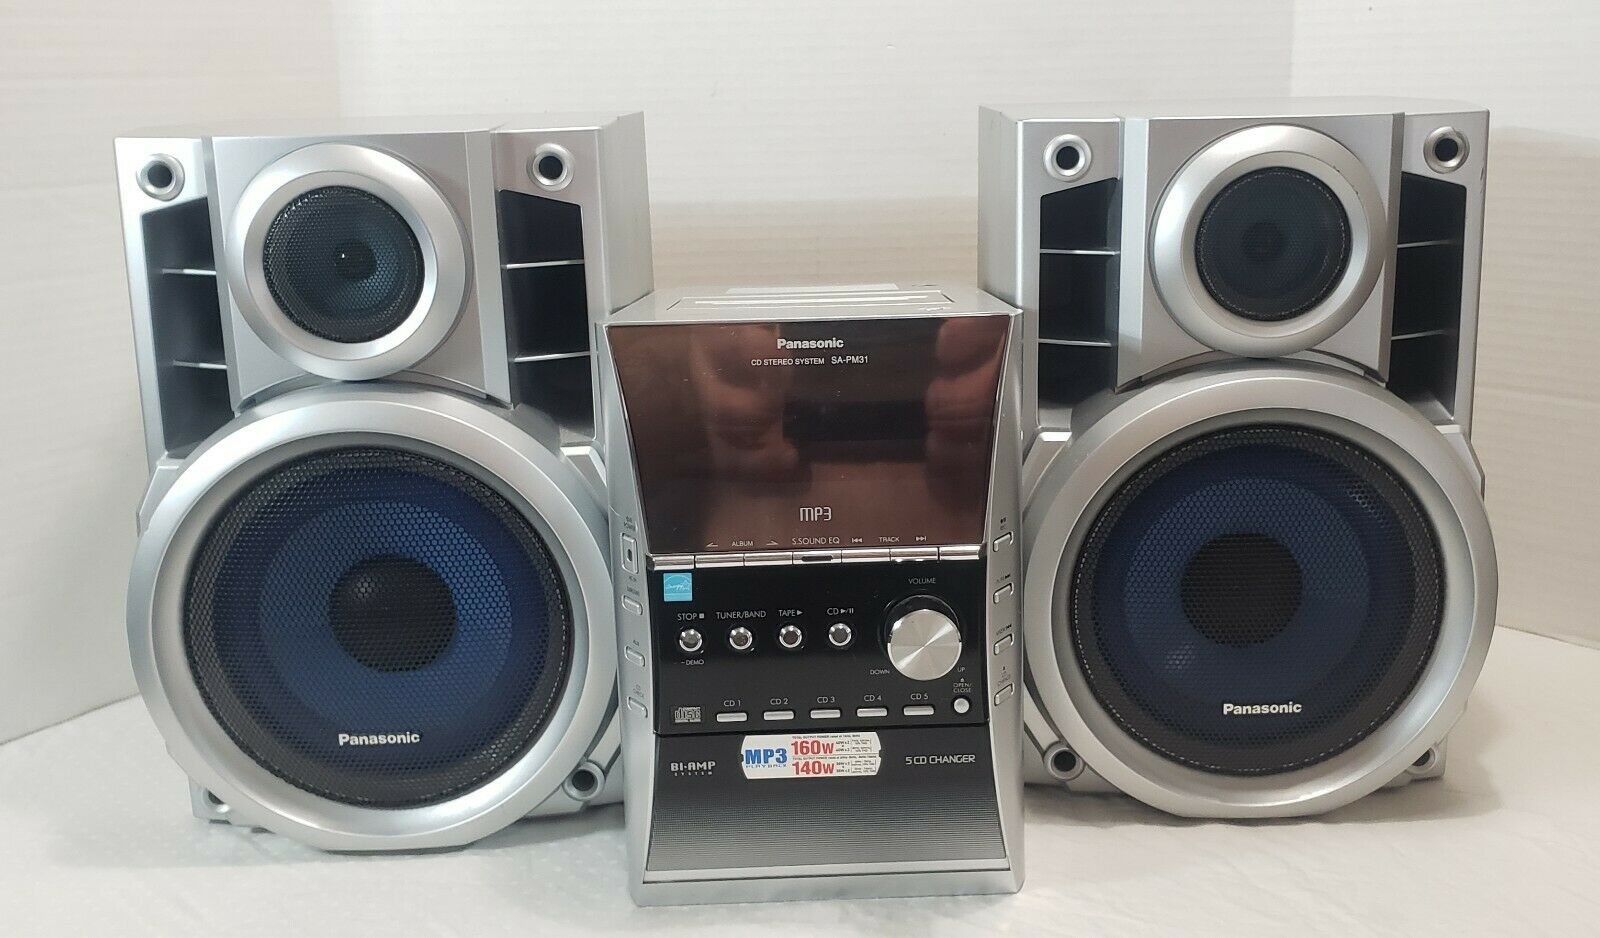 Panasonic Sa Pm 31 Cd Stereo System For Sale Online Ebay